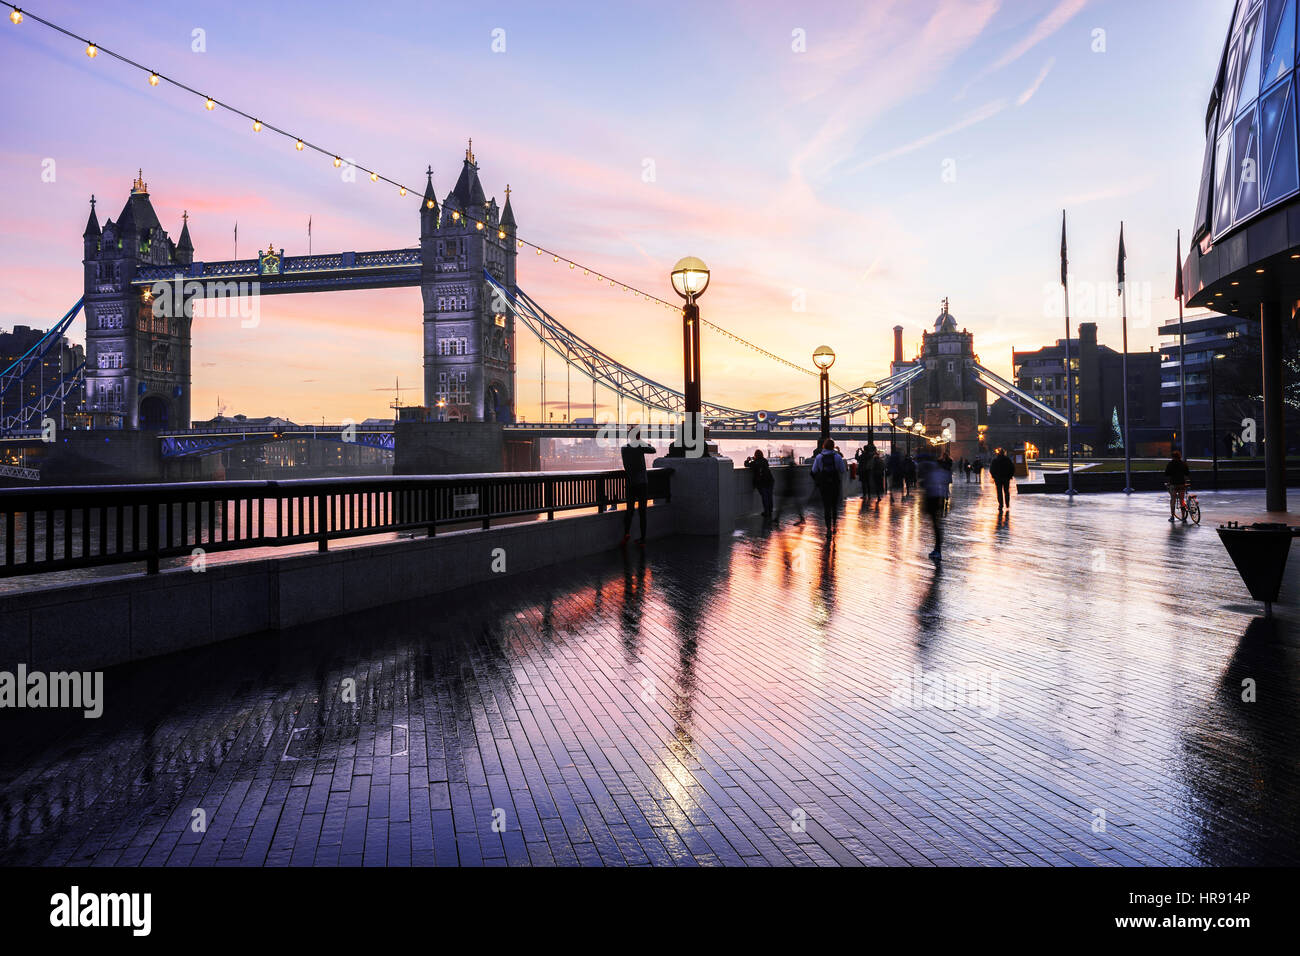 Tower Bridge and the bank of River Thames with blurred people, Southwark, London, UK - Stock Image